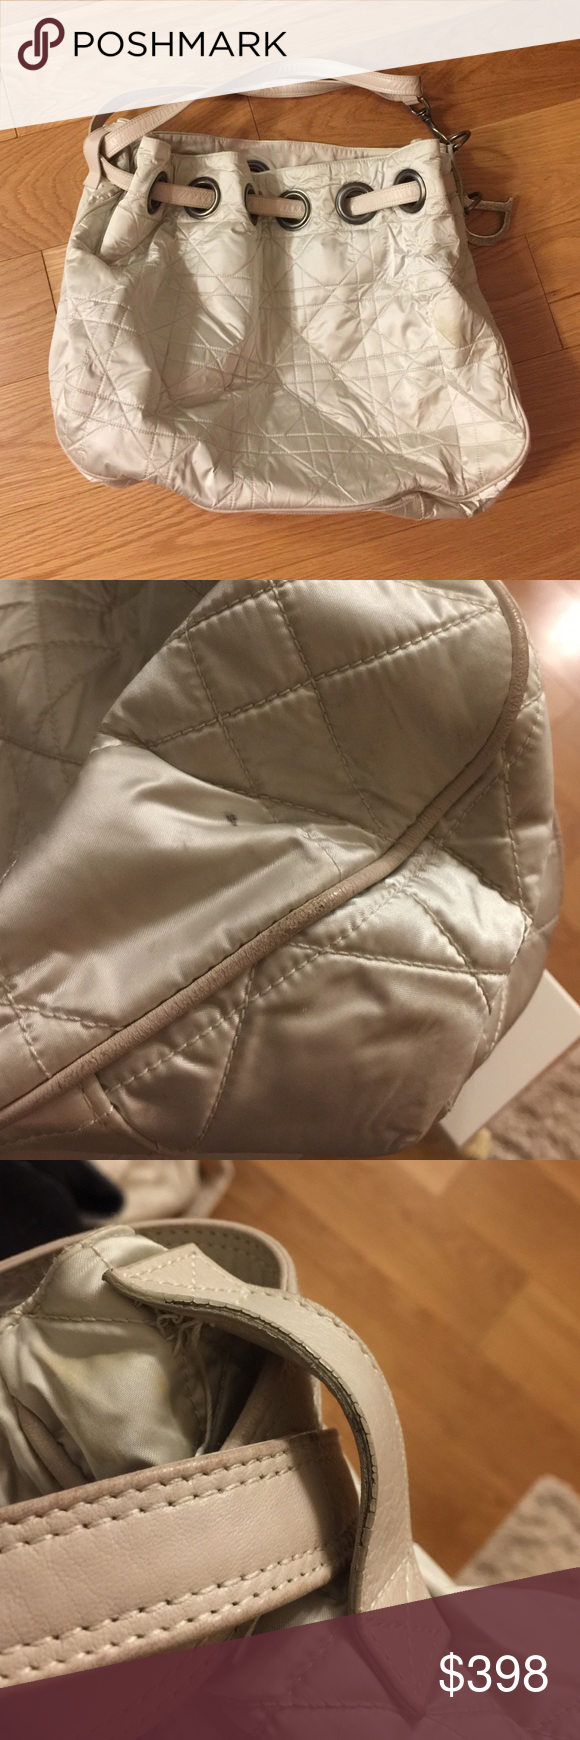 Dior large quilted champagne drawstring bag Large size quilted drawstring bag, preloved, in gorgeous champagne color. ALL signs of wear noted above in pics. Great deal for a large size designer bag! Offers welcomed! Dior Bags